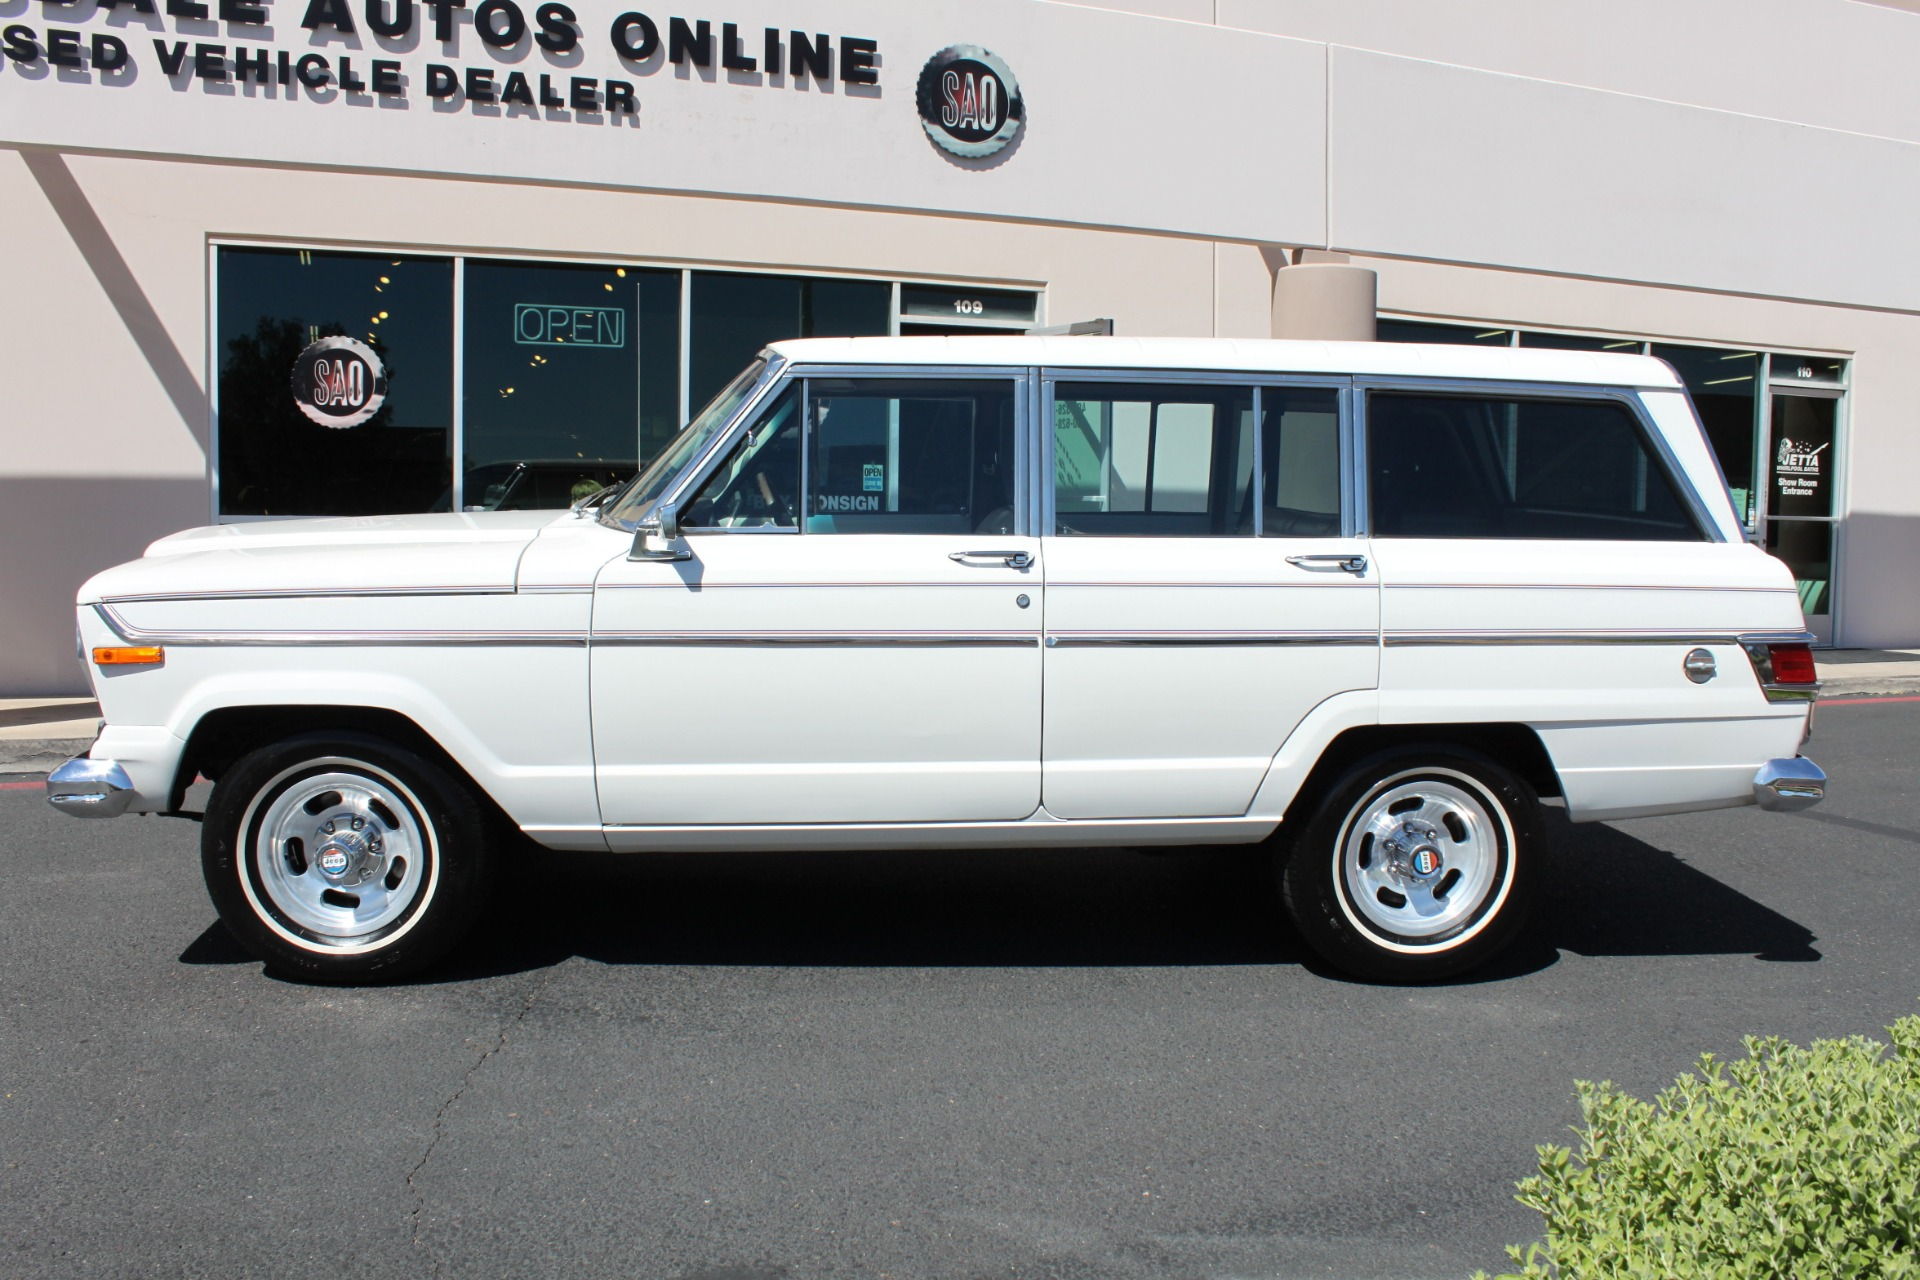 Used-1977-Jeep-Wagoneer-Custom-Fuel-Injected-66-Liter-401-Wagoneer